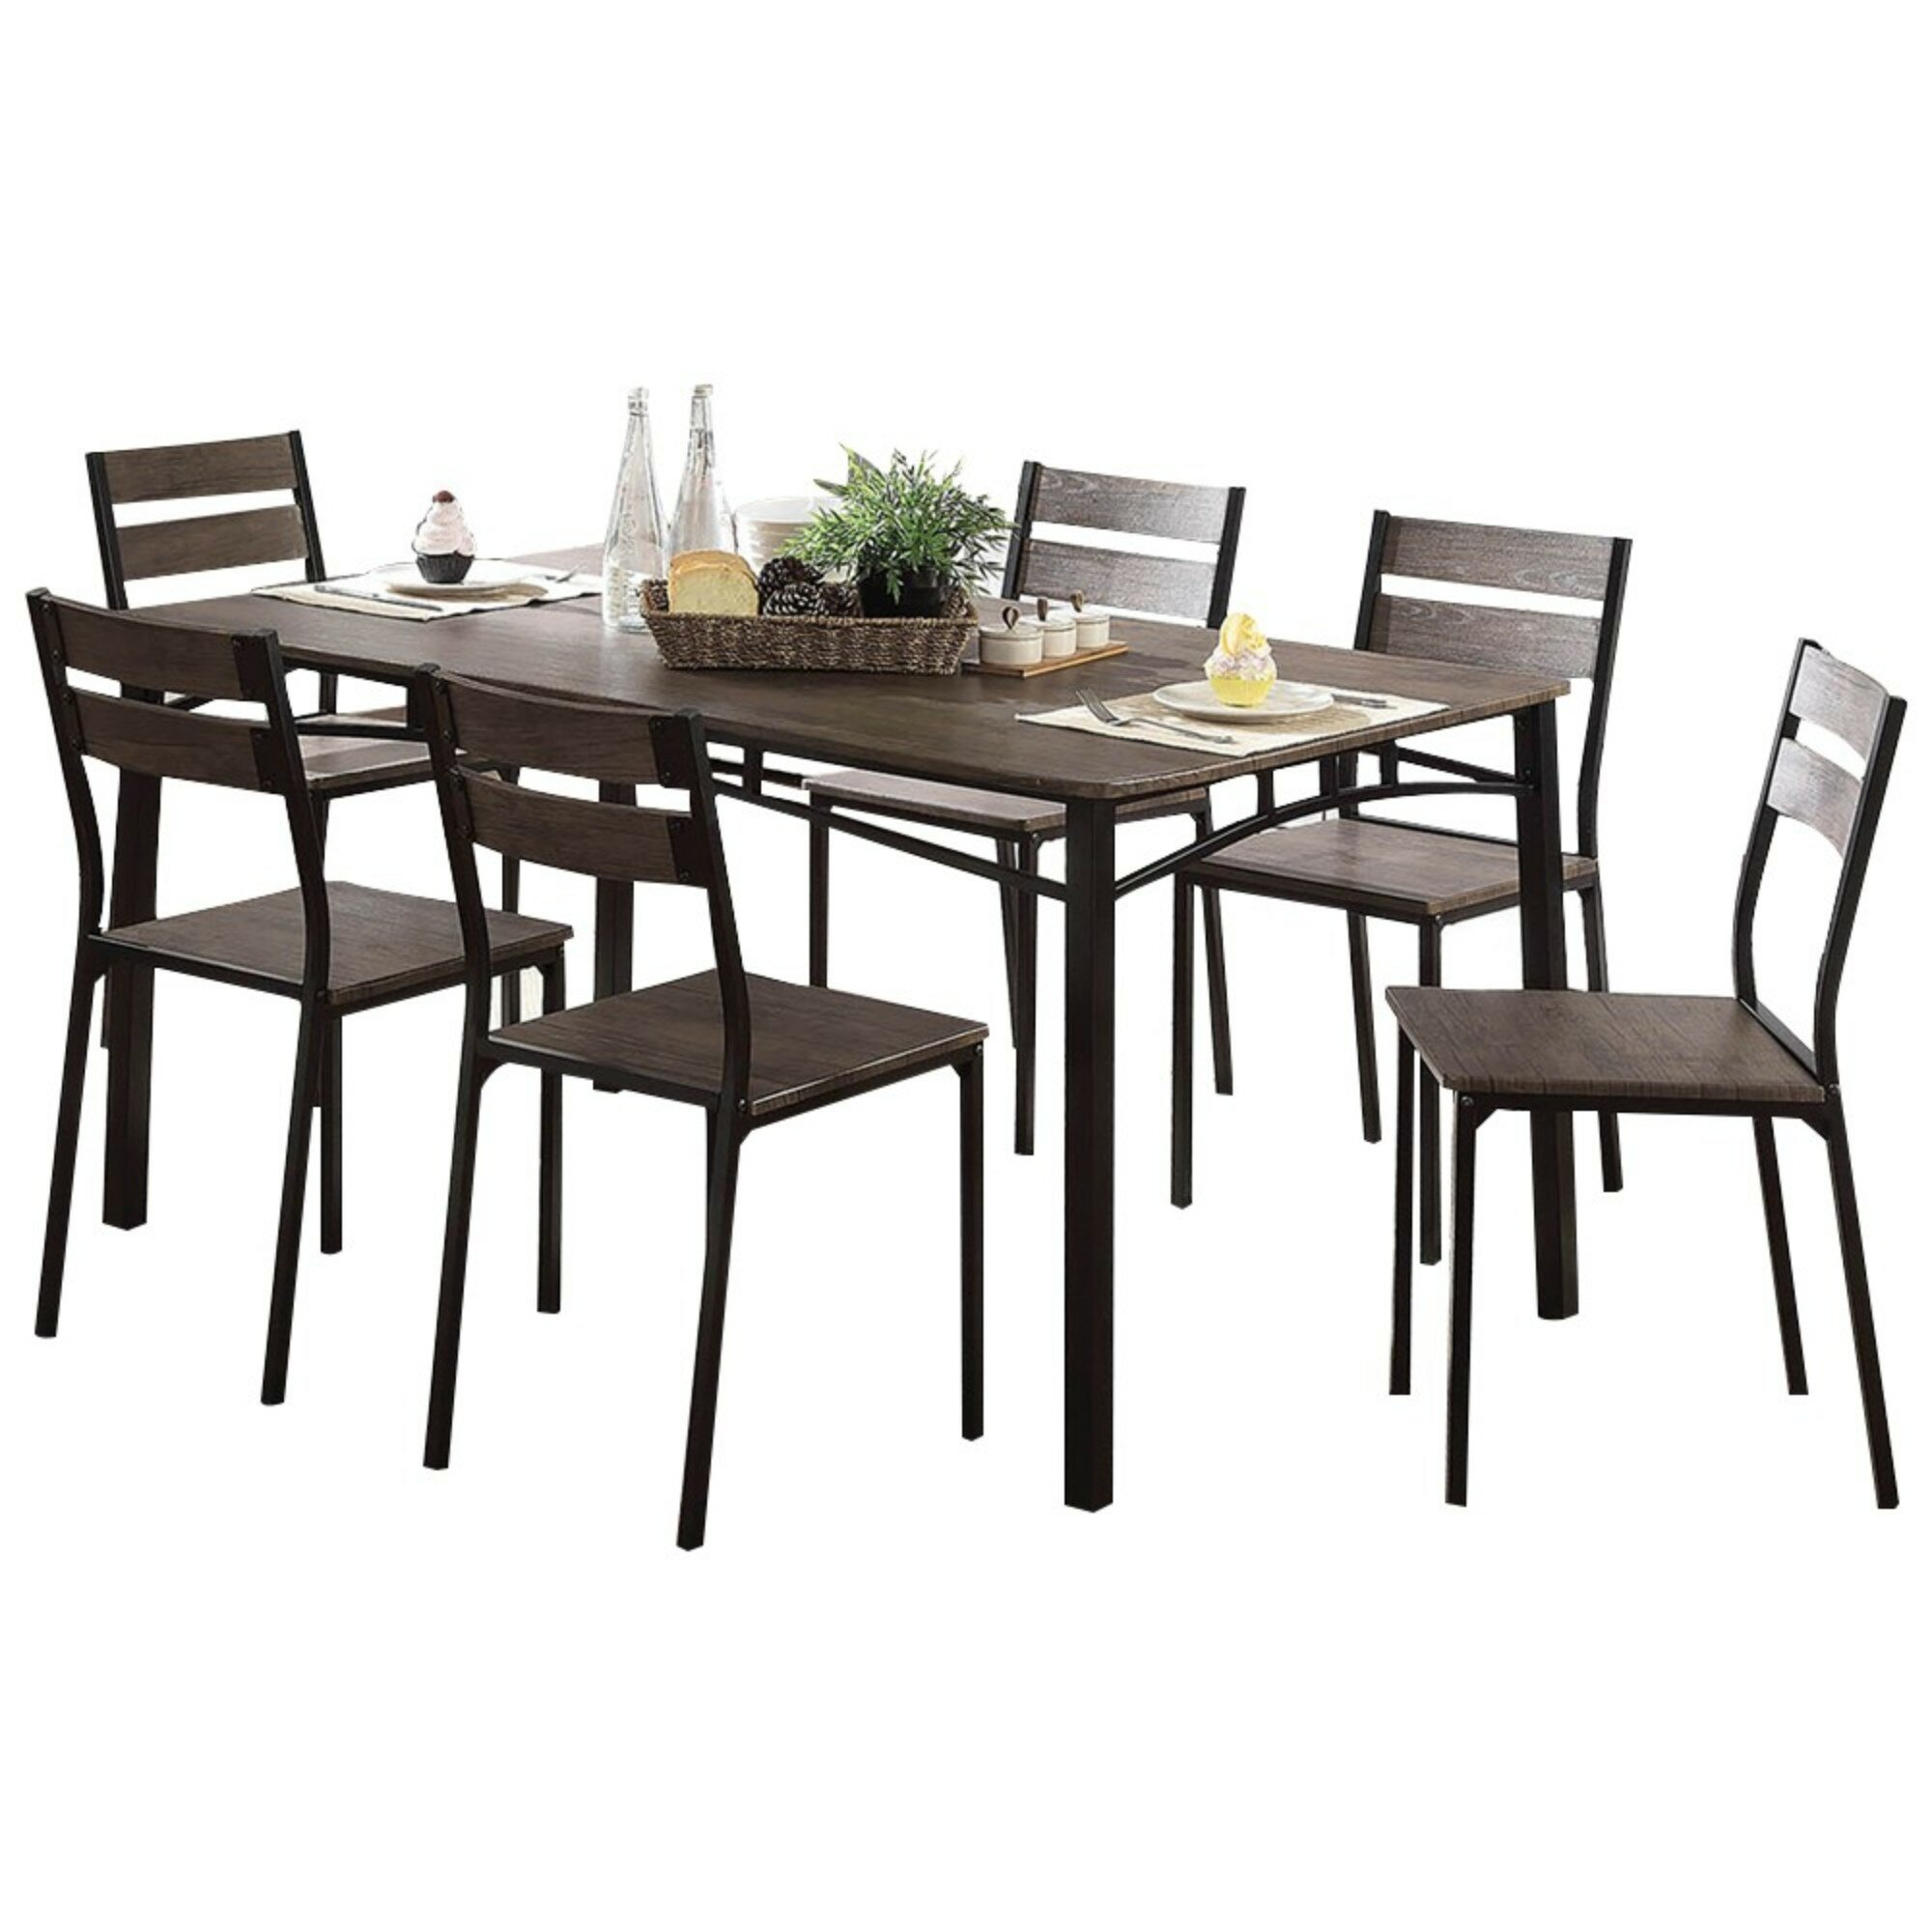 Union Rustic Brockway Wooden 7 Piece Counter Height Dining Table Set